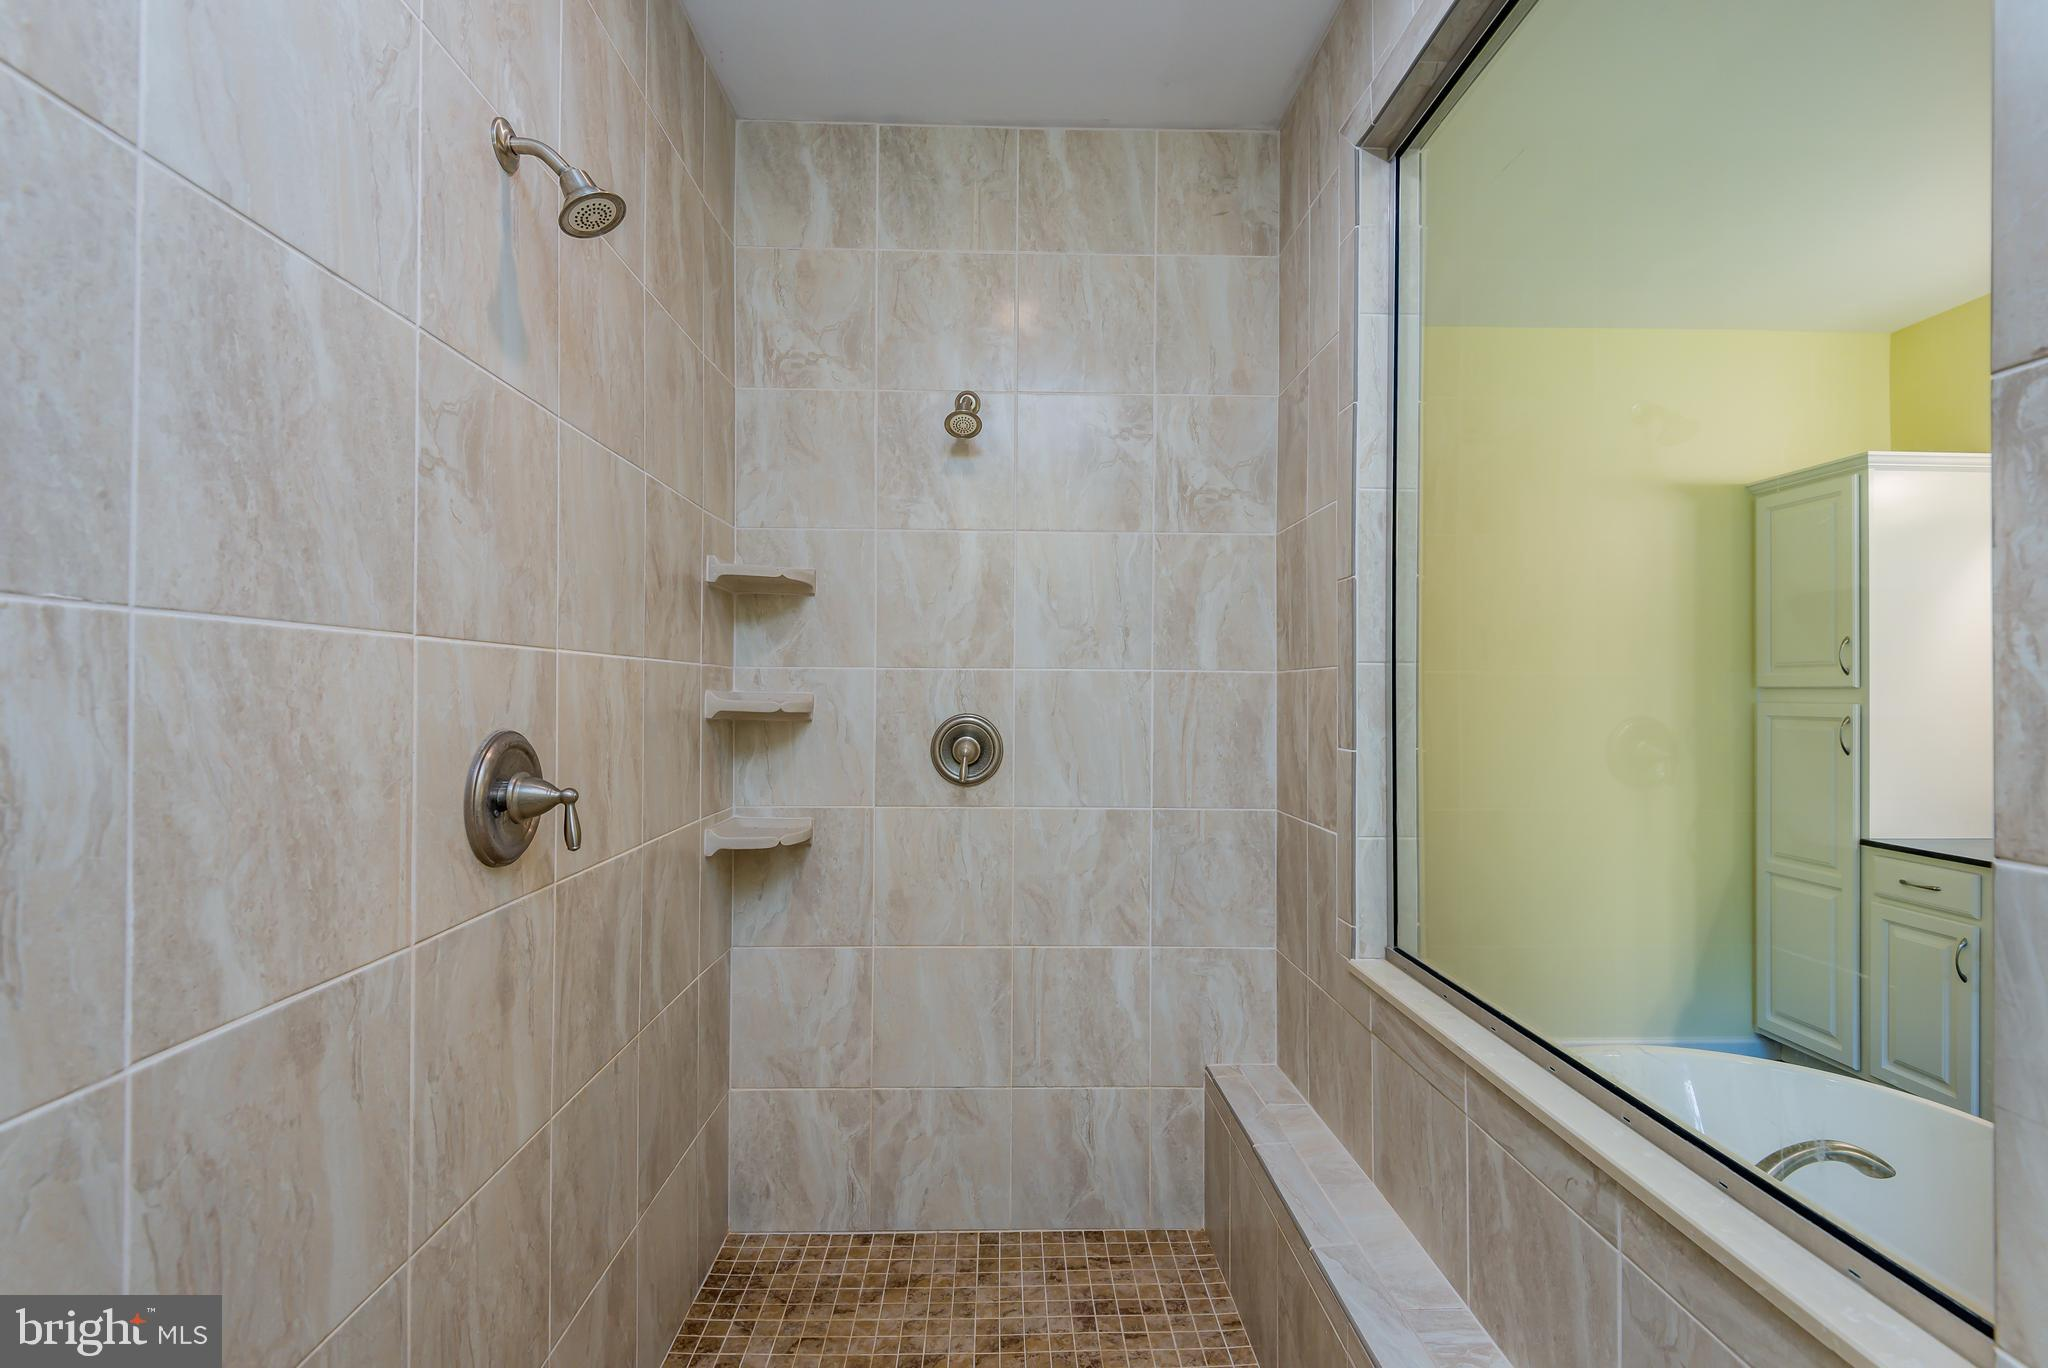 Upgraded bathroom package when built!